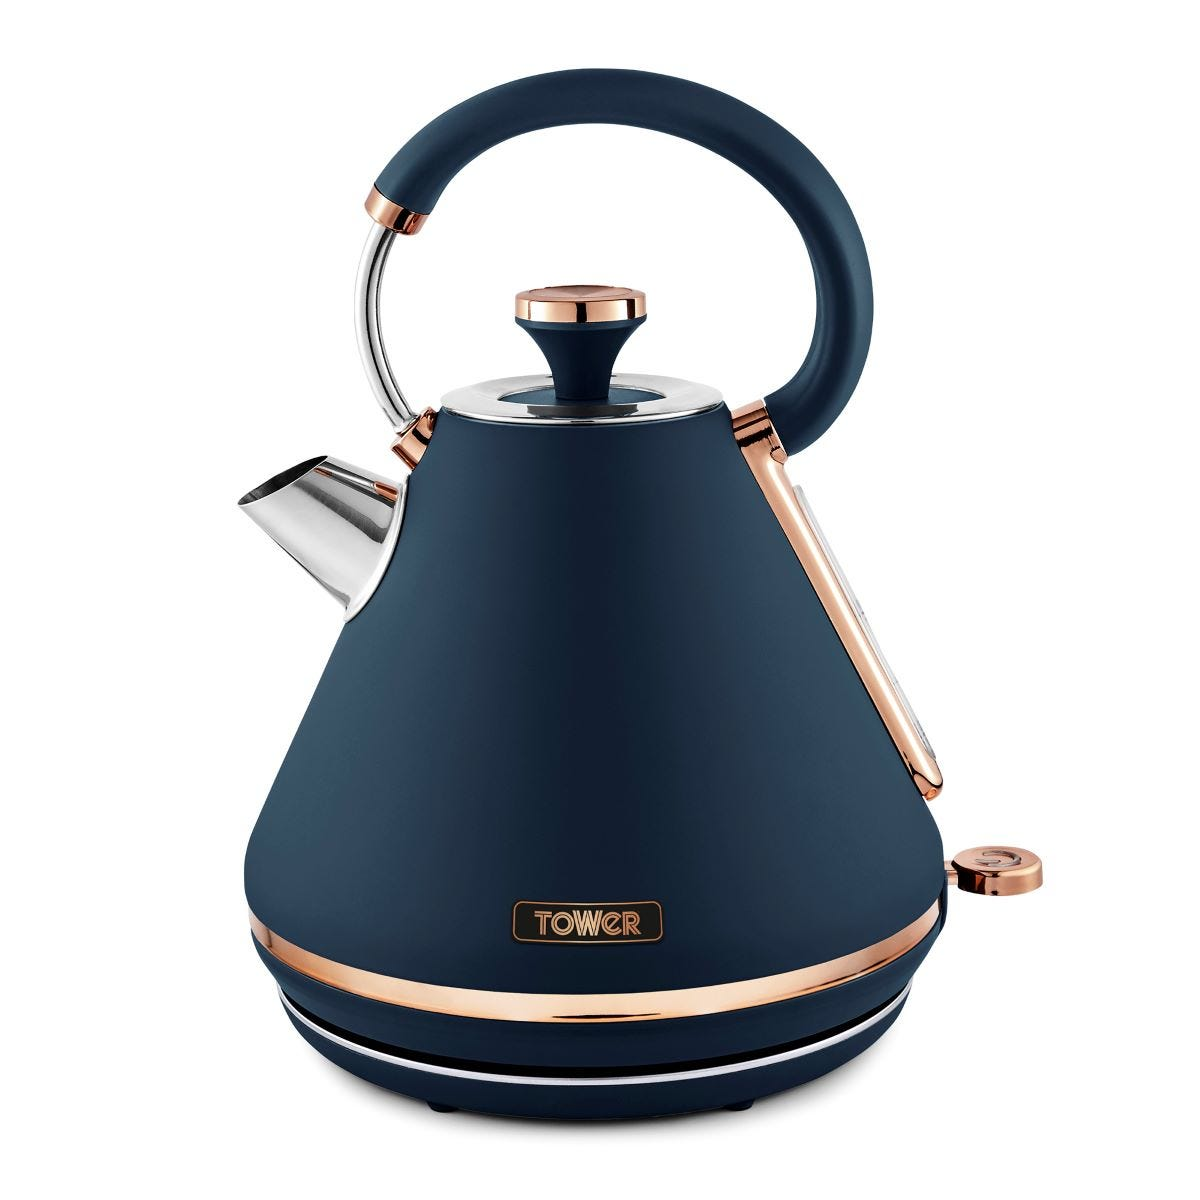 Tower T10044MNB Cavaletto 3KW 1.7L Pyramid Kettle - Blue and Rose Gold